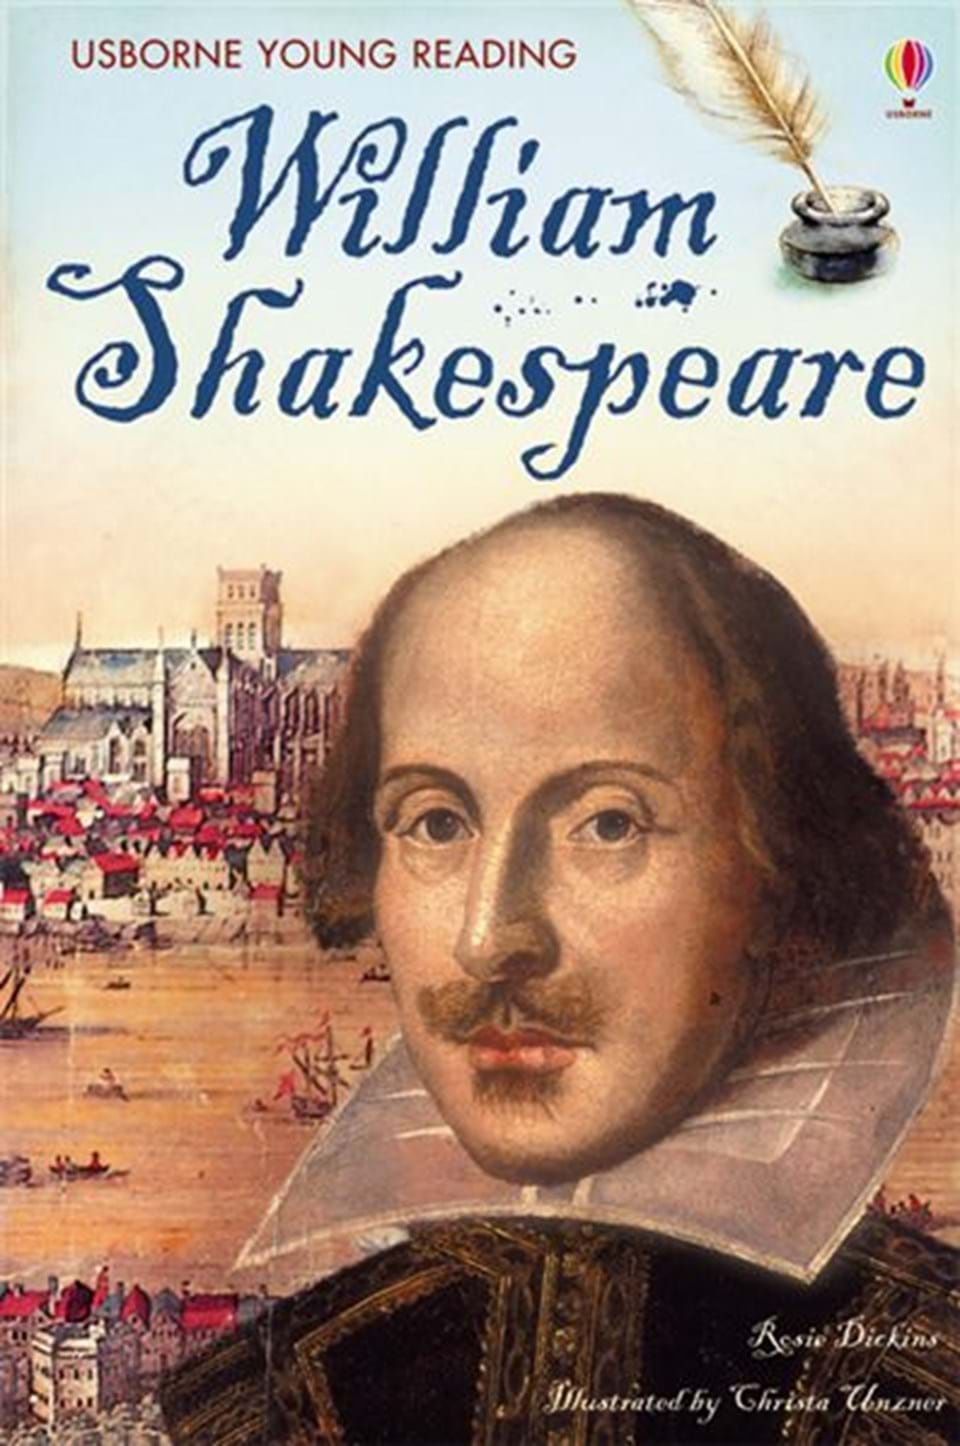 the early experiences of william shakespeare in literature William shakespeare (26 april 1564 (baptized)  these plays are among the best known in english literature and are studied in schools around the world.